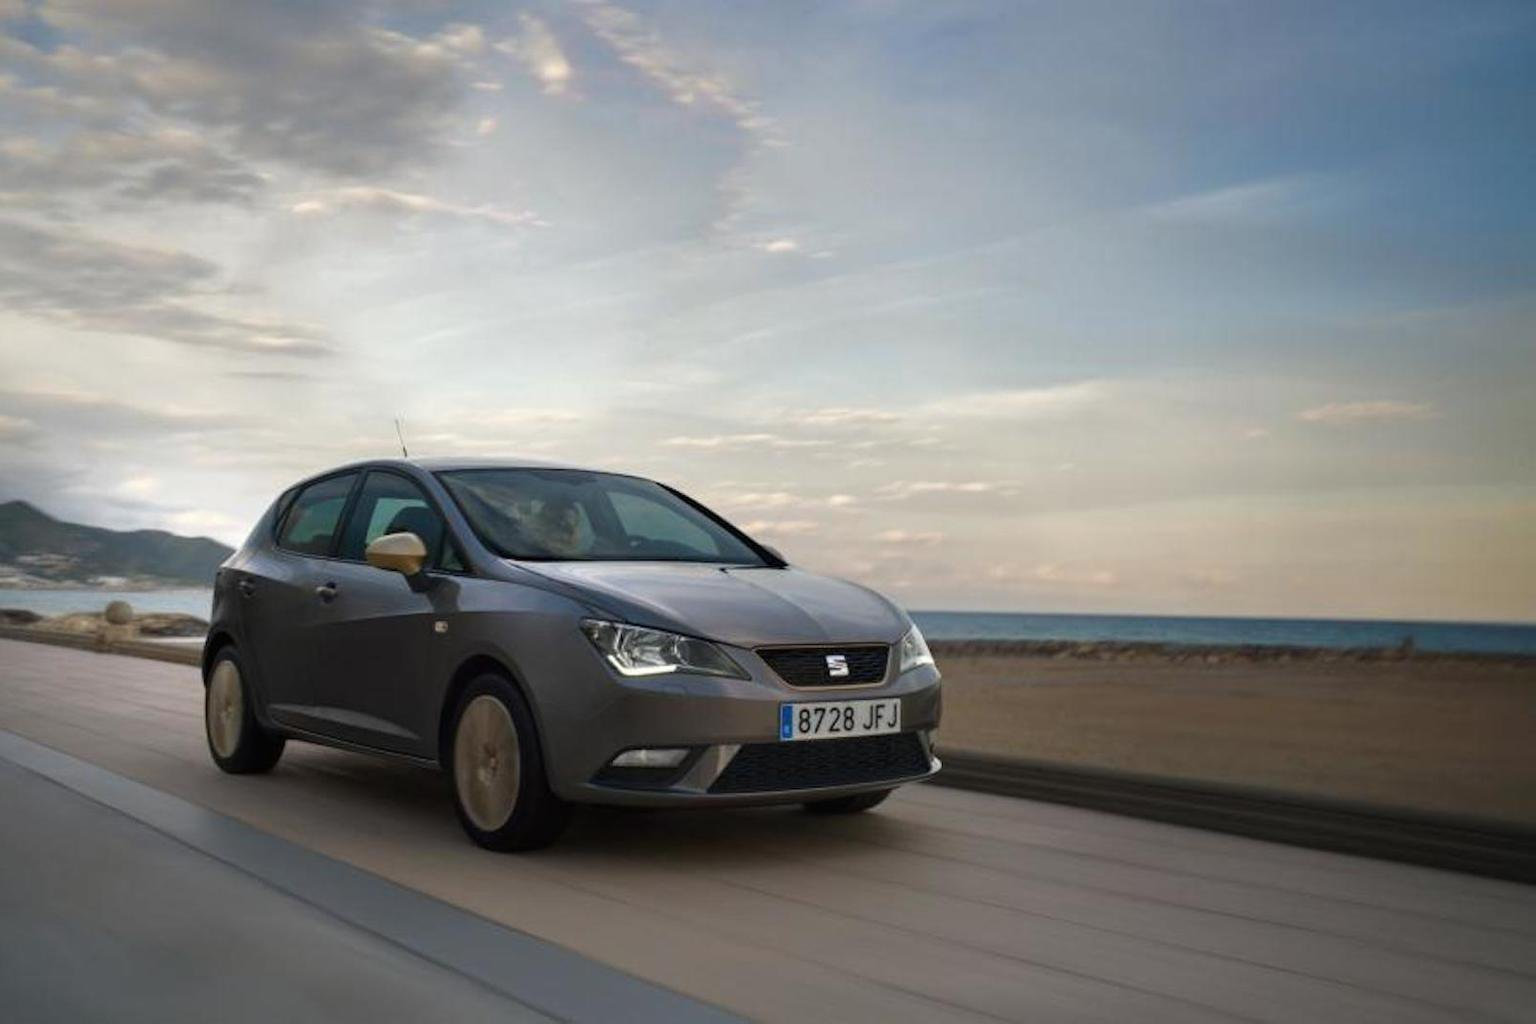 2015 Seat Ibiza 1.0 TSI 95 review